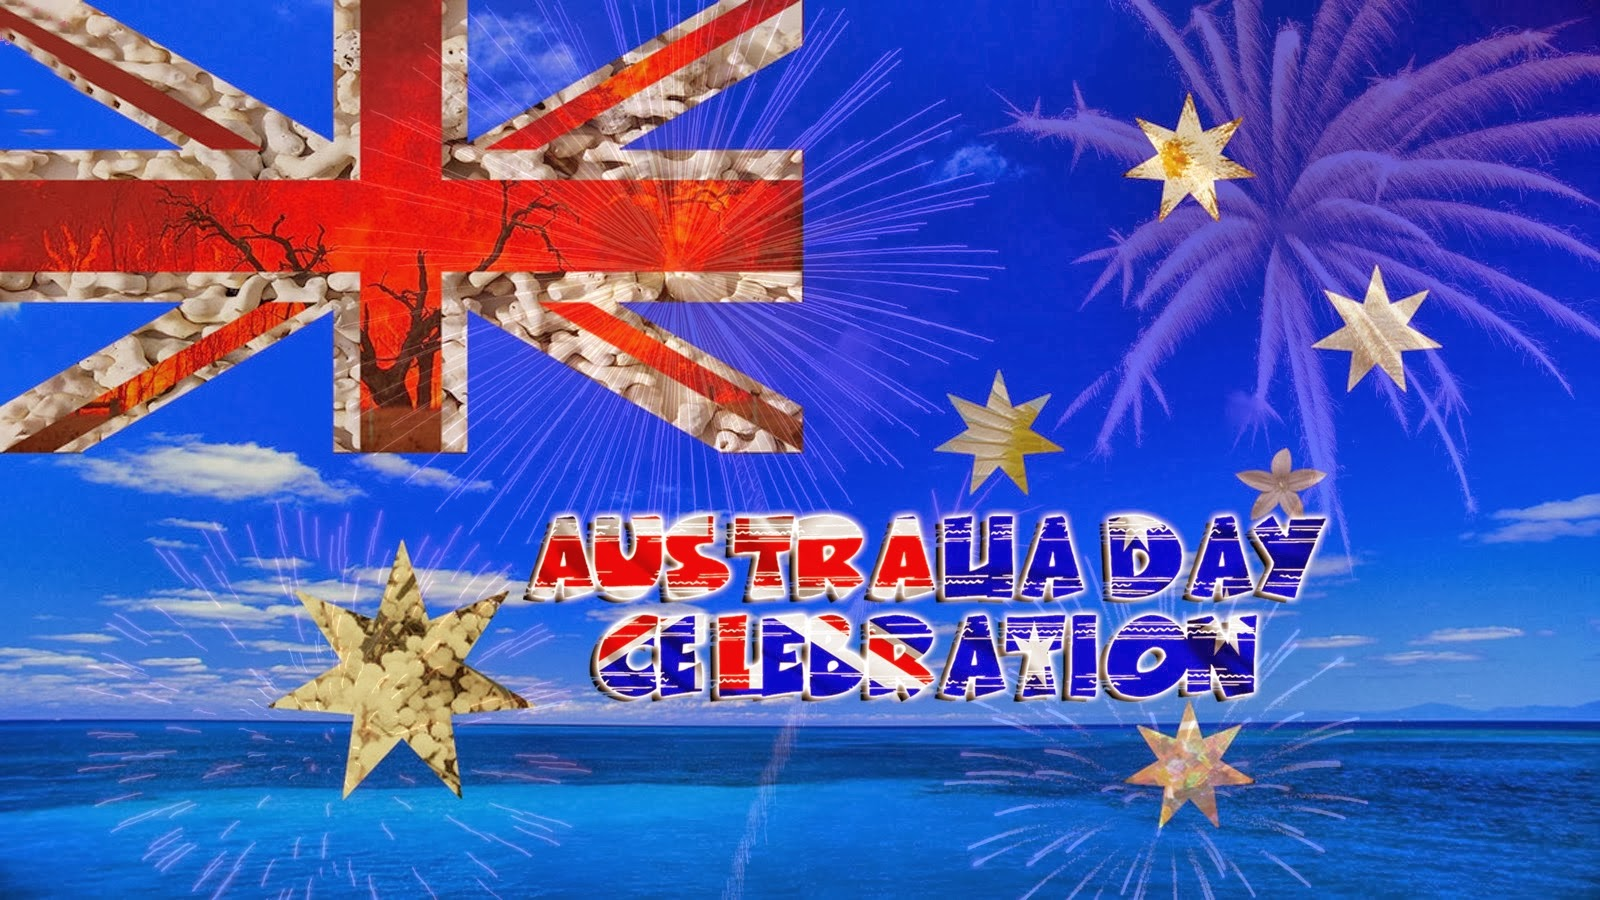 why australia day is unique 25) it has the highest rate of gambling in the world with over 80 percent of australian adults engaging in gambling of some kind and 20 percent of the pokie machines in the world are found in australia 26) australia day today is a celebration of diversity and tolerance in australian society, embracing all ethnic backgrounds, racial differences.